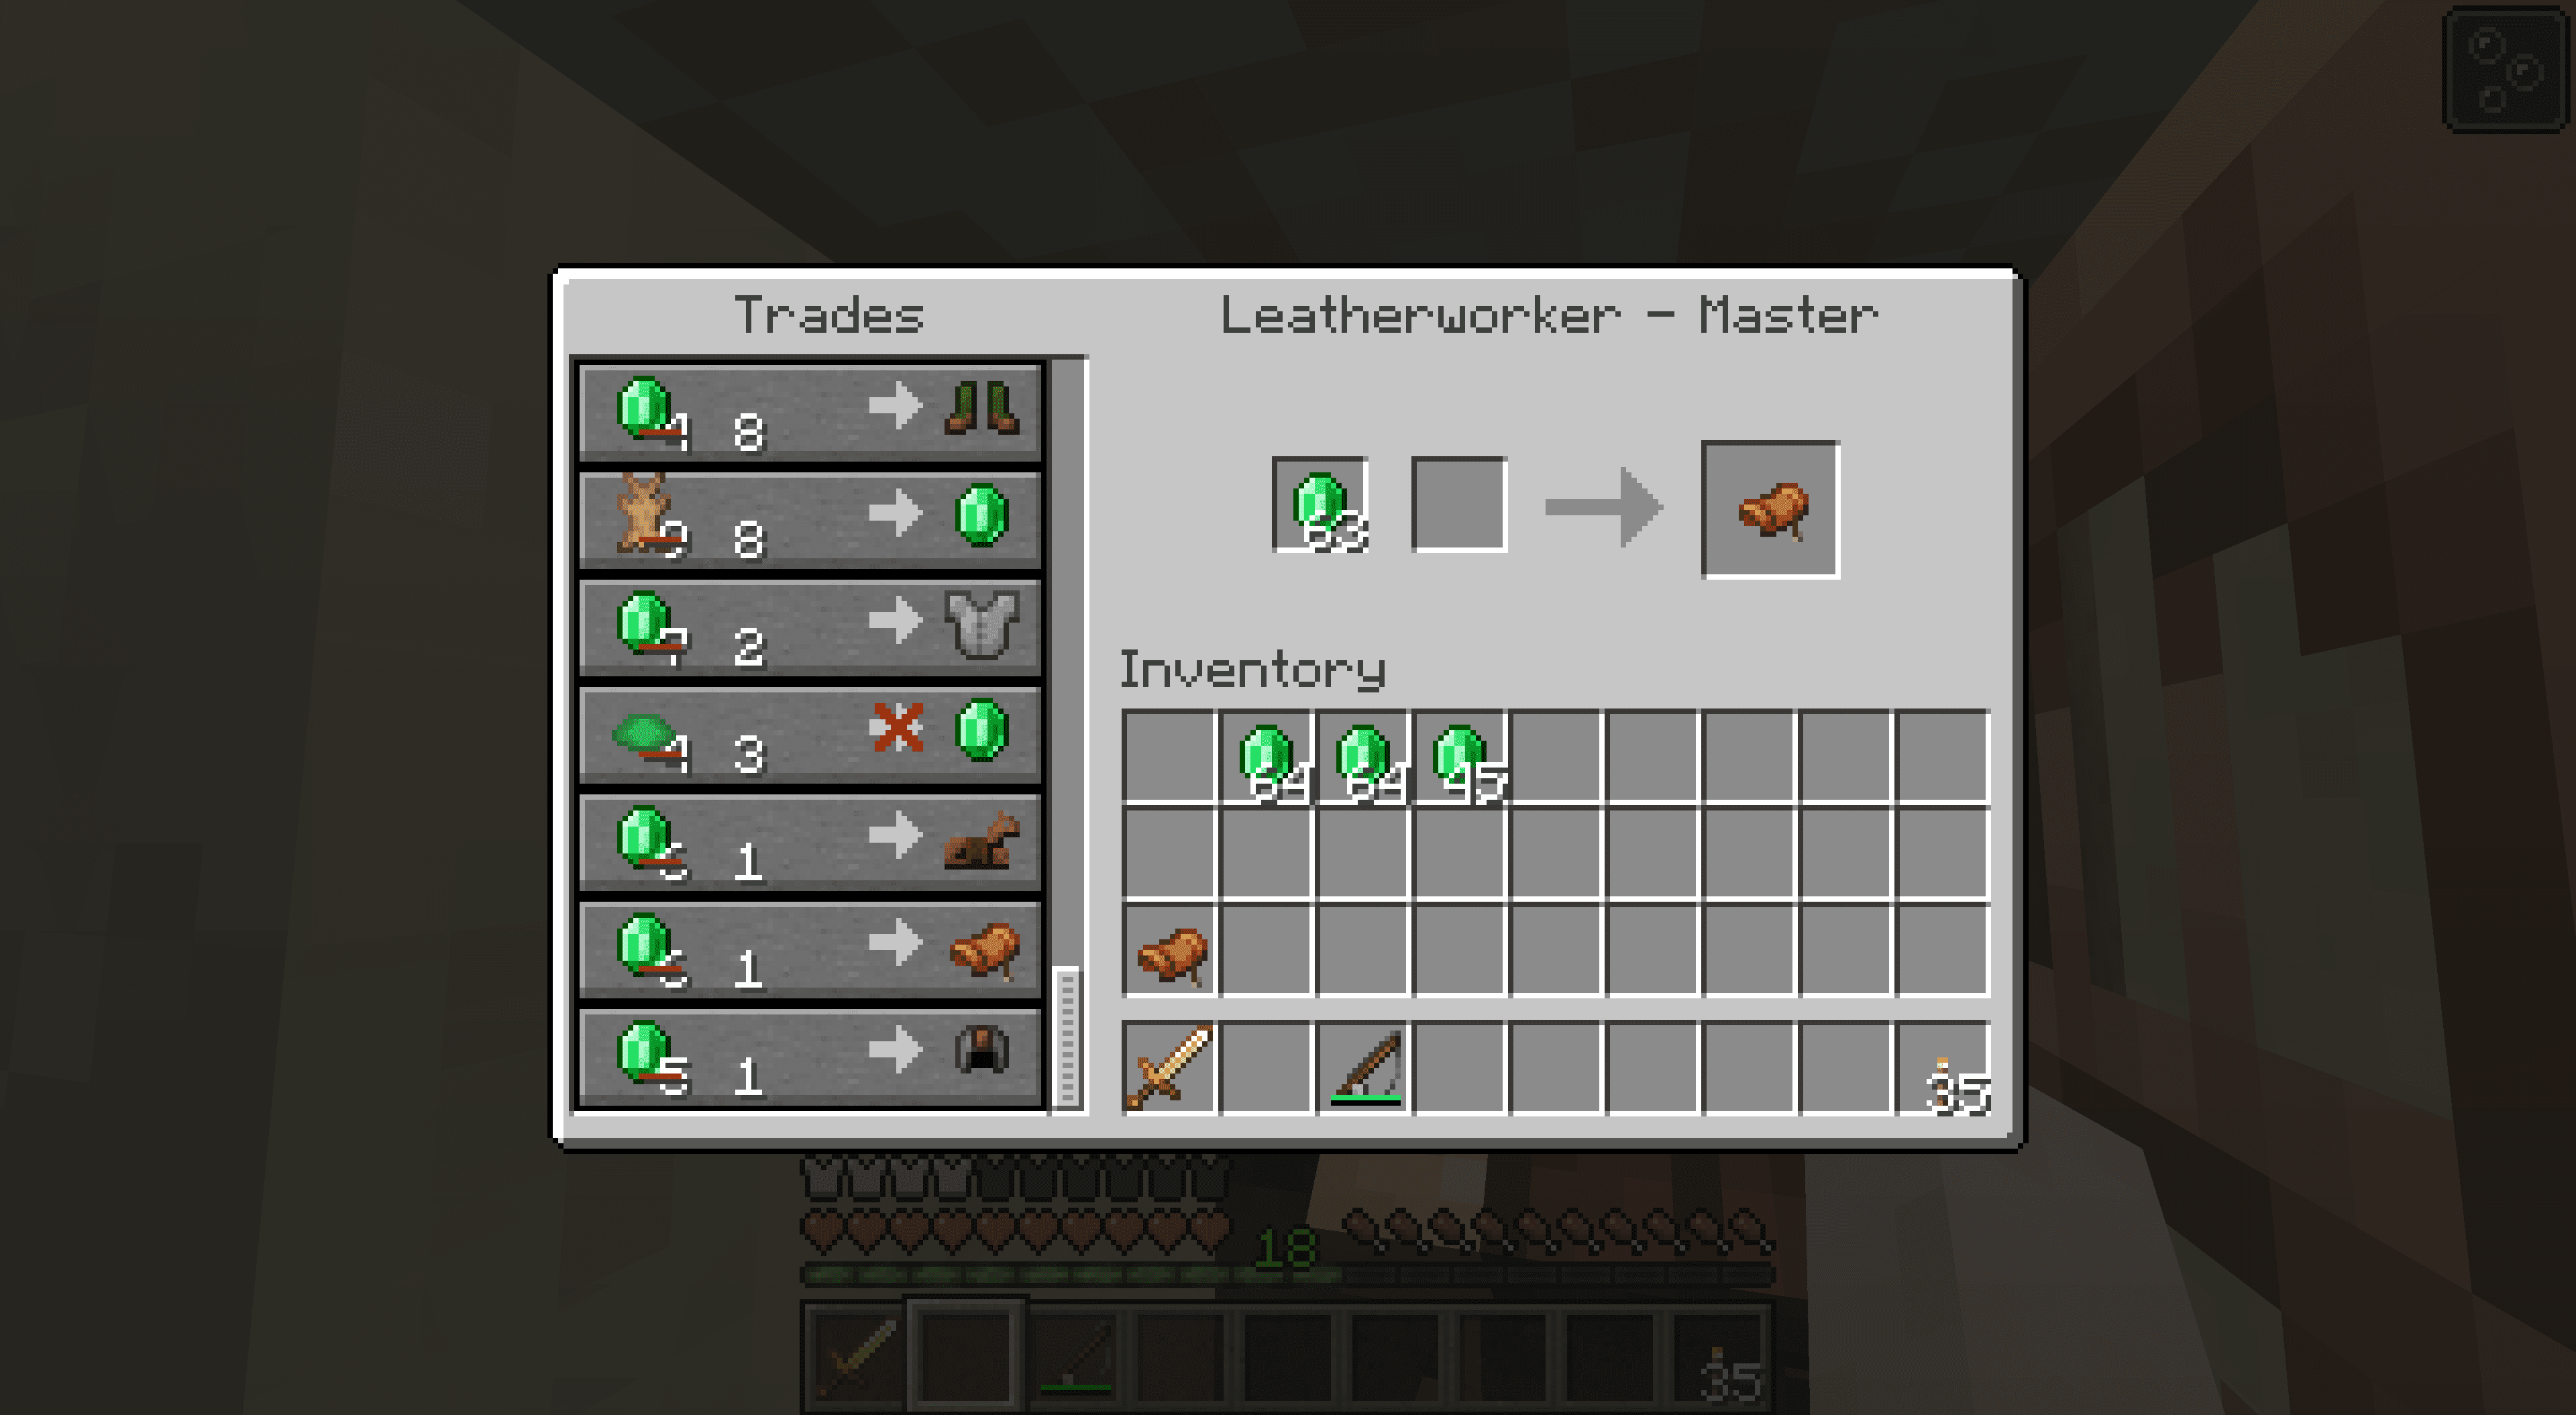 Trading for a saddle with a master leatherworker in Minecraft.